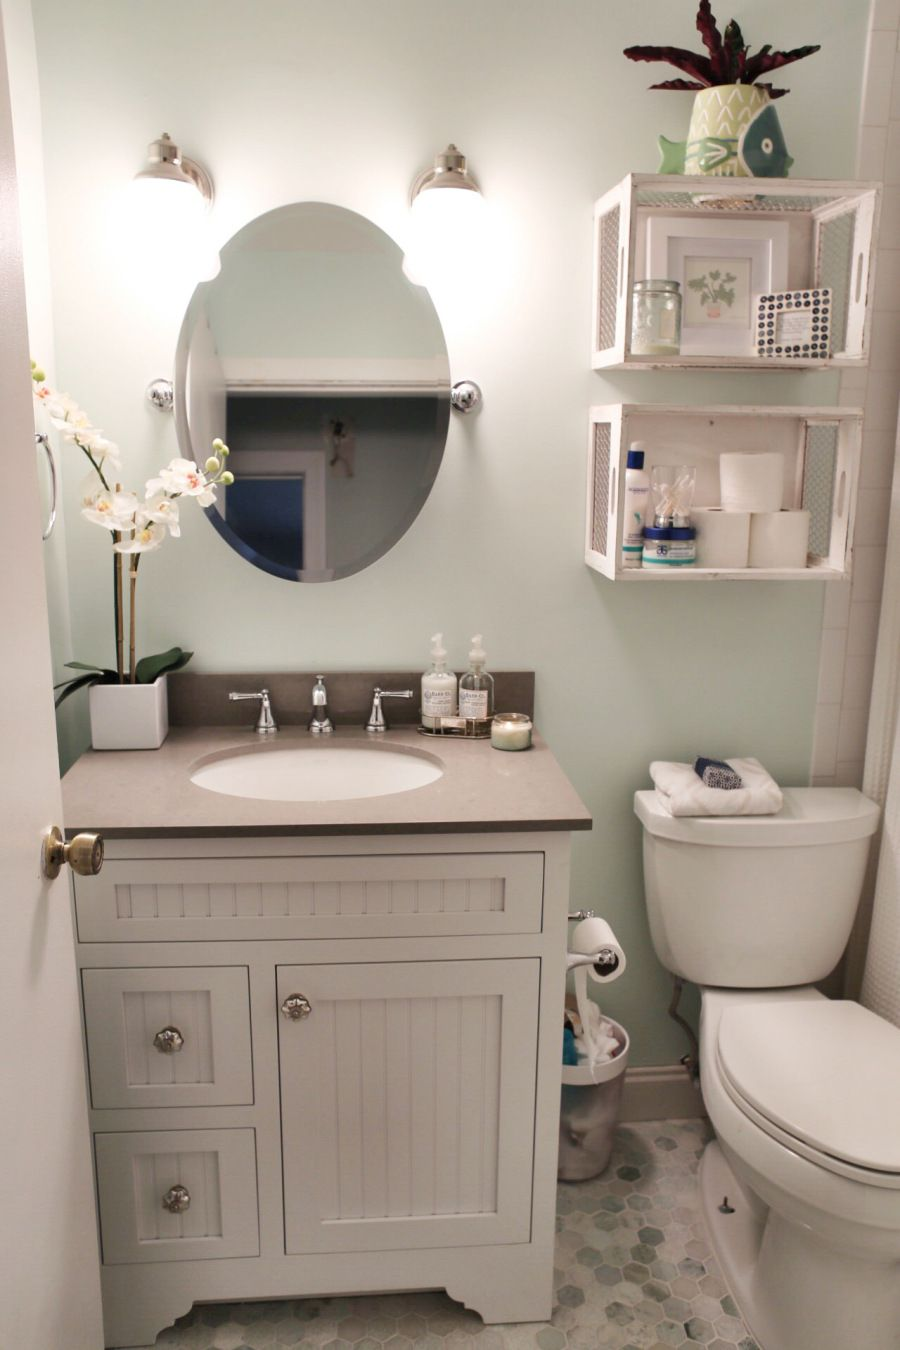 Pin by Melynda Boehm on Home | Bathroom, Small bathroom, Small ... Half Bathroom Designs For Small Bathrooms Html on examples of decorated bathrooms, linen closet designs for bathrooms, paint colors for small bathrooms,